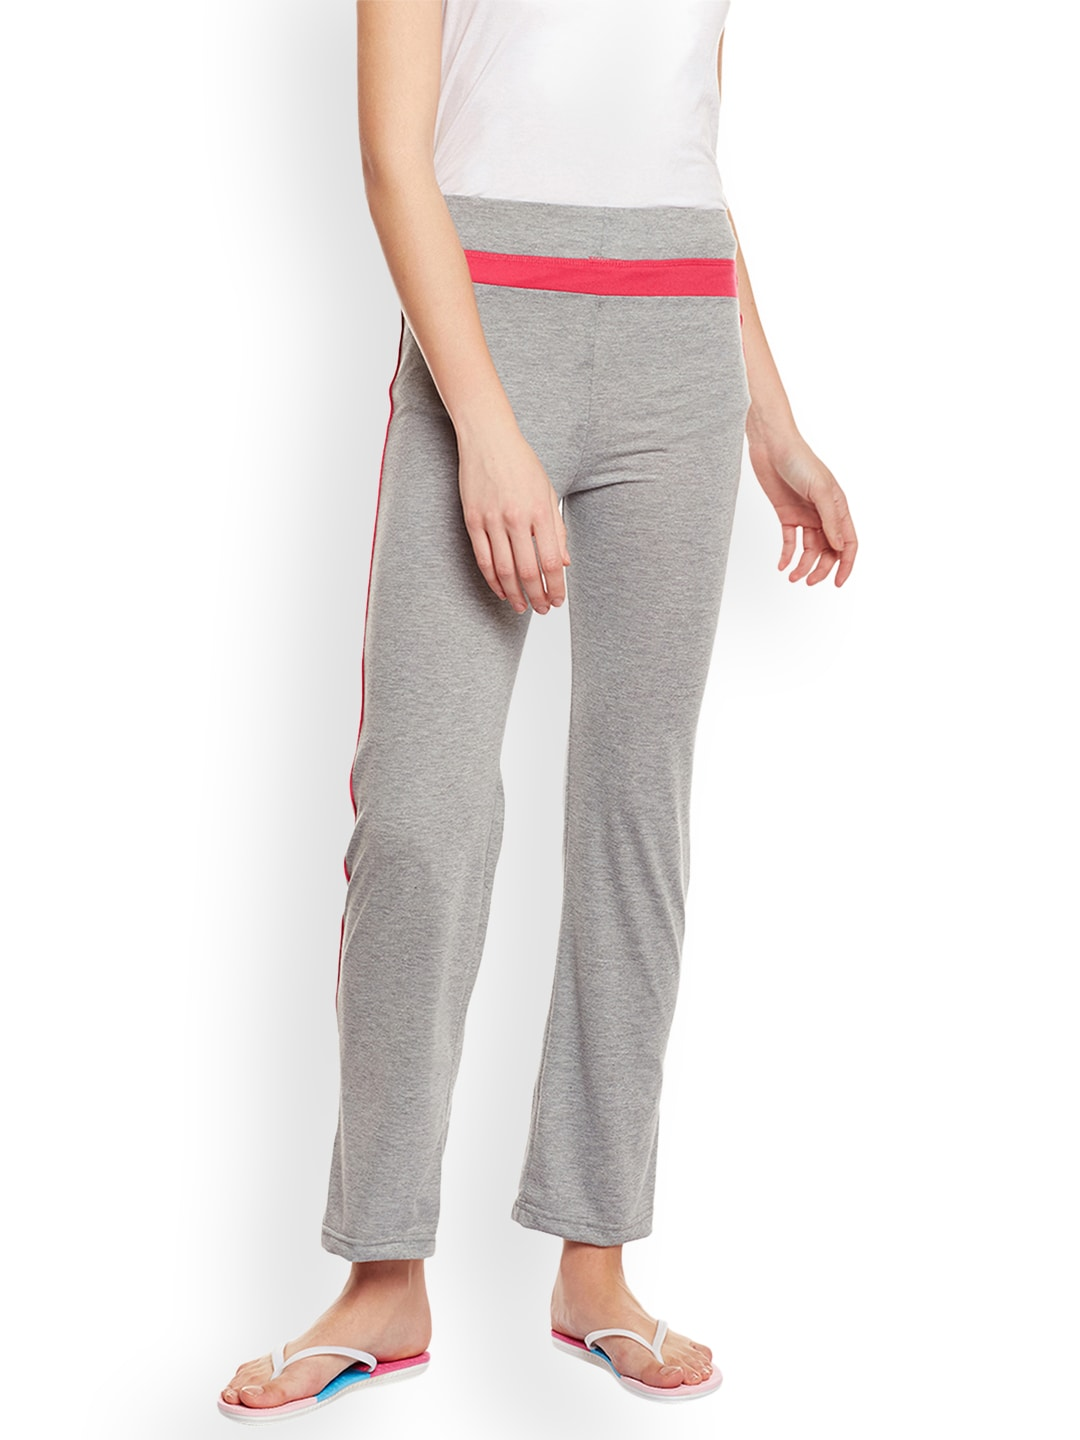 042ff2fd Vimal Track Pants Pants - Buy Vimal Track Pants Pants online in India